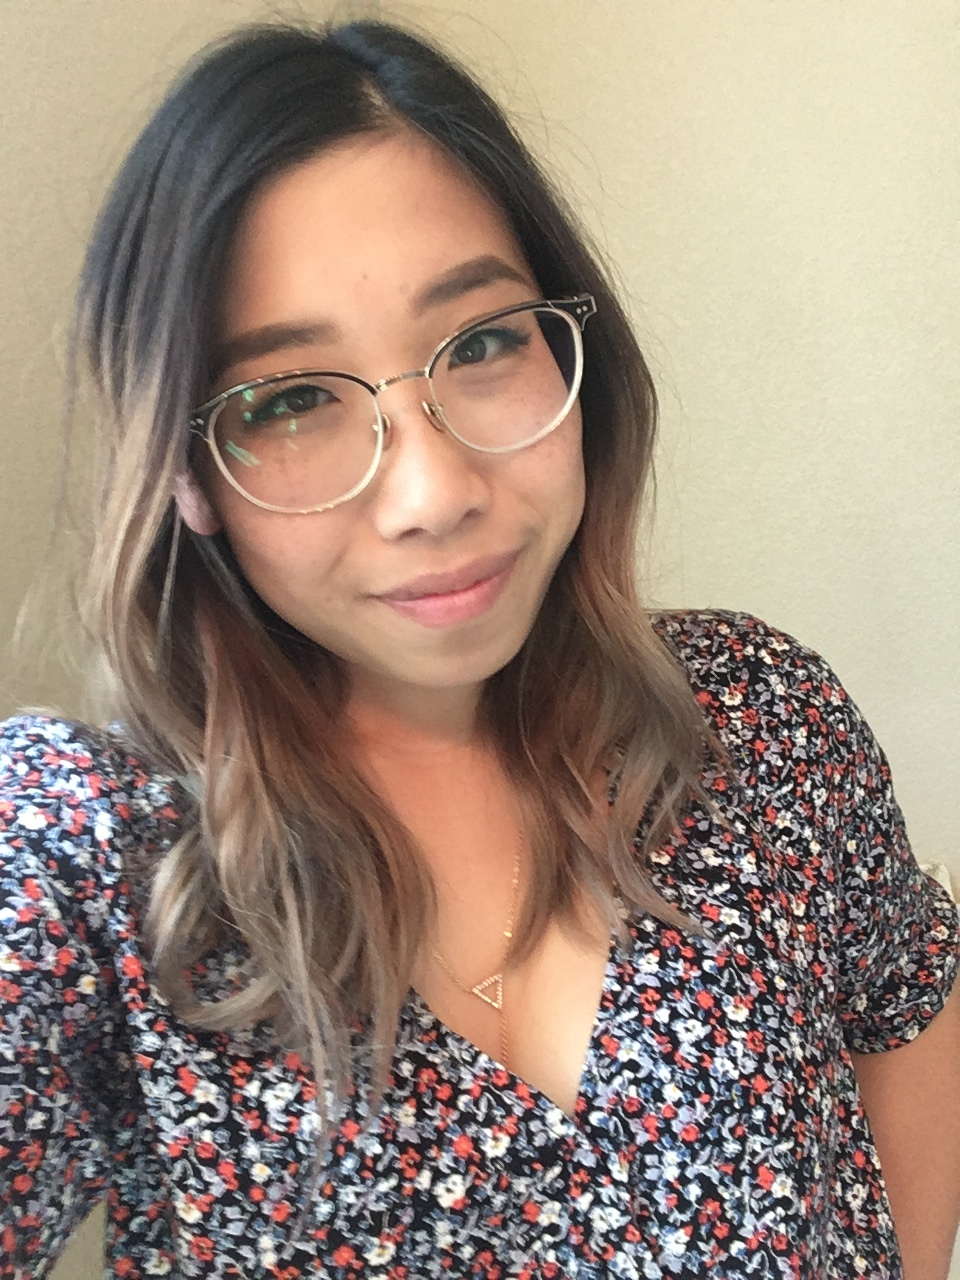 Andrea Jen - Andrea's passion for planning and bubbly personality really shine when it comes to coordinating events. After completing her studies and internships in Hospitality Management, she began a career in Food & Beverage Management in South Africa. Thereafter, she moved back to her hometown in the Bay Area to find her feet. She has been assisting and coordinating weddings since 2015.